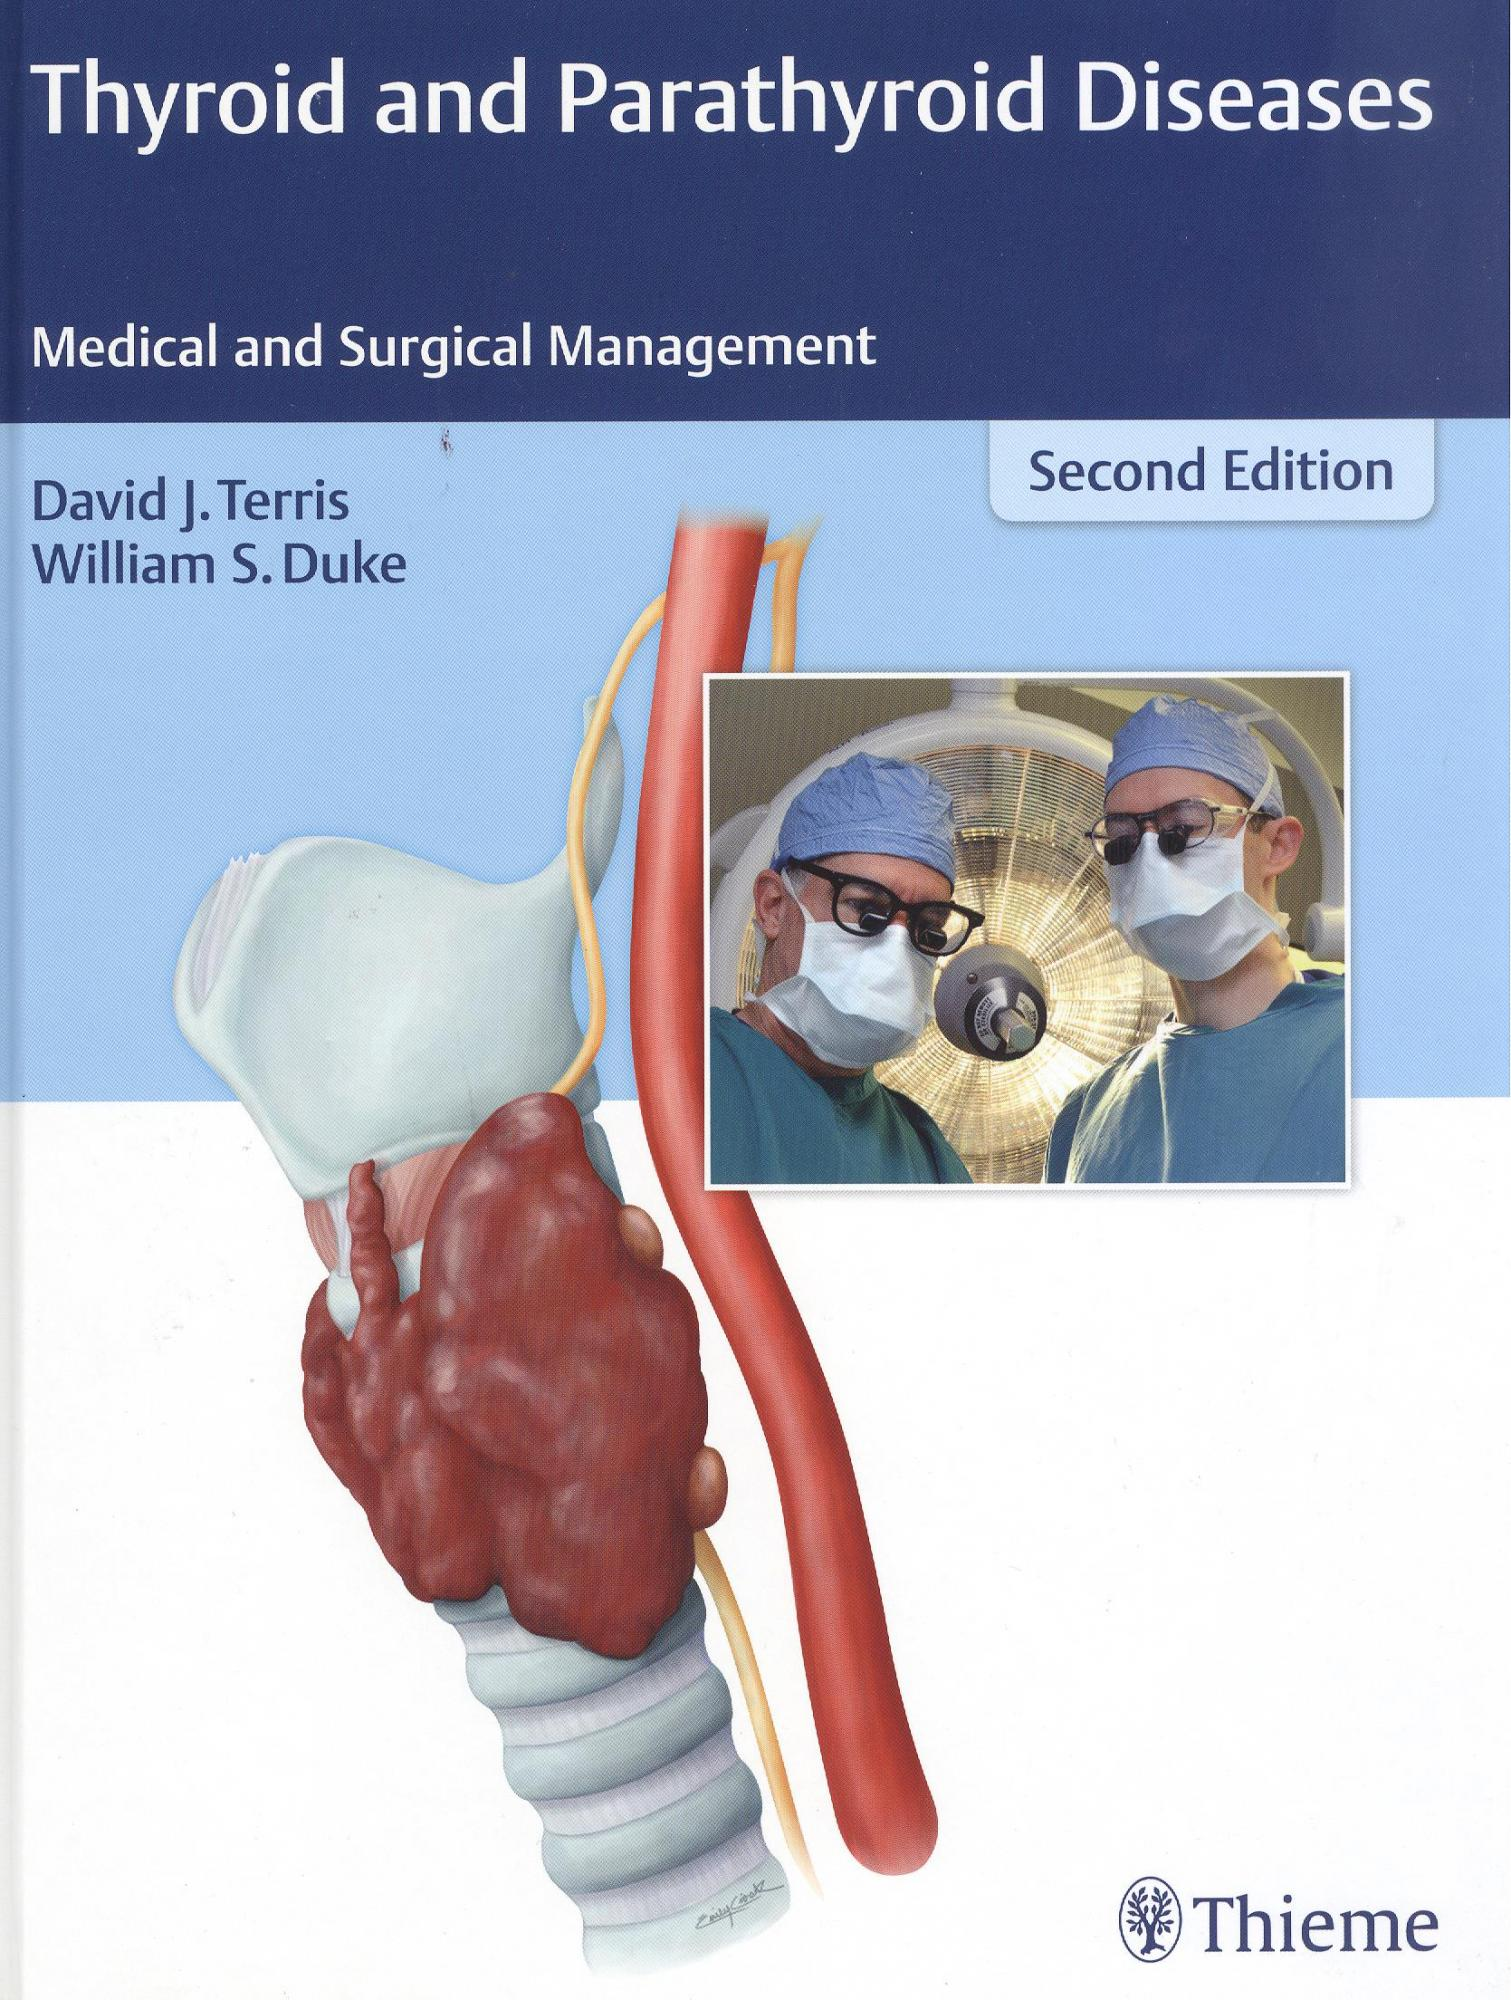 Thyroid and Parathyroid Diseases: Medical and Surgical Management, 2nd ed